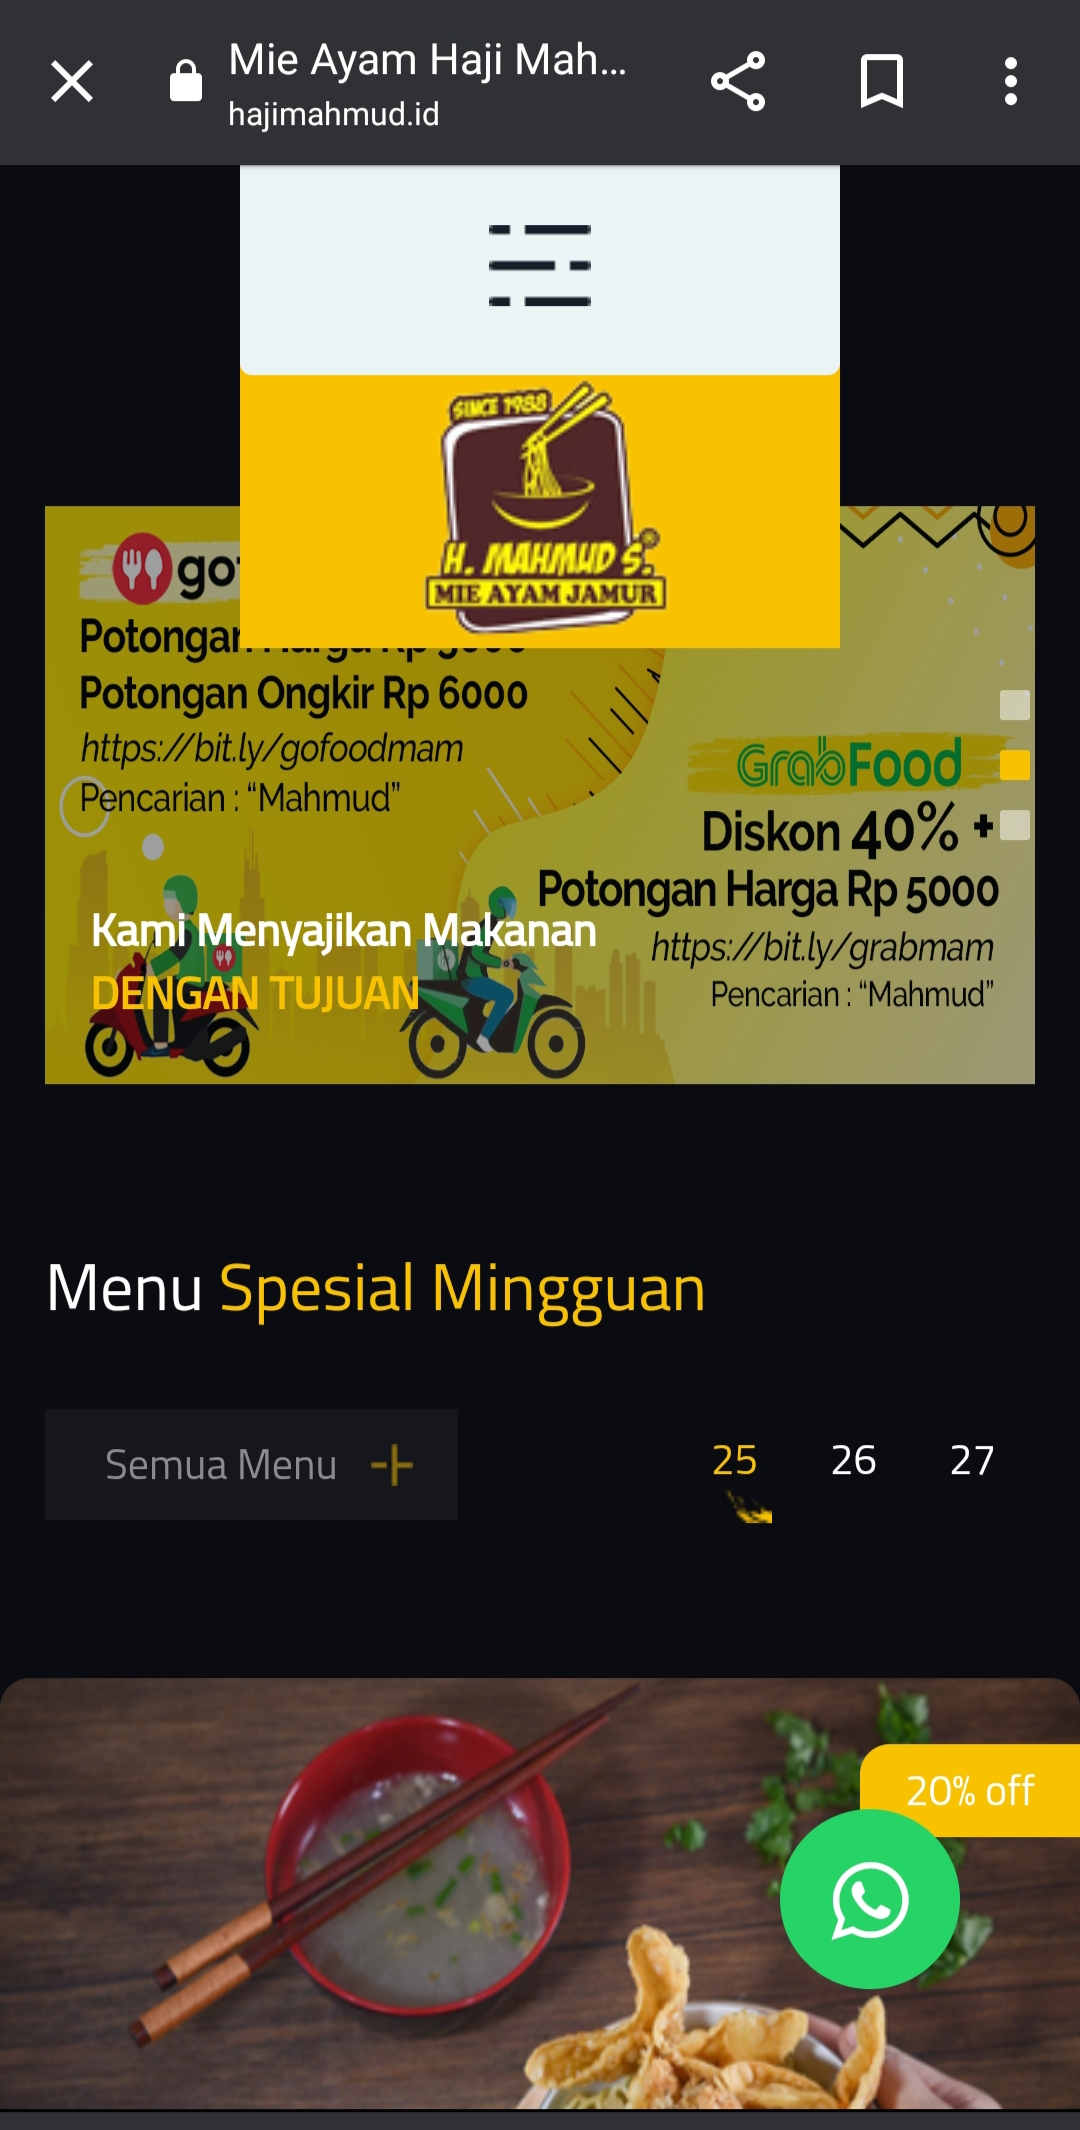 Mie Ayam Go Digital